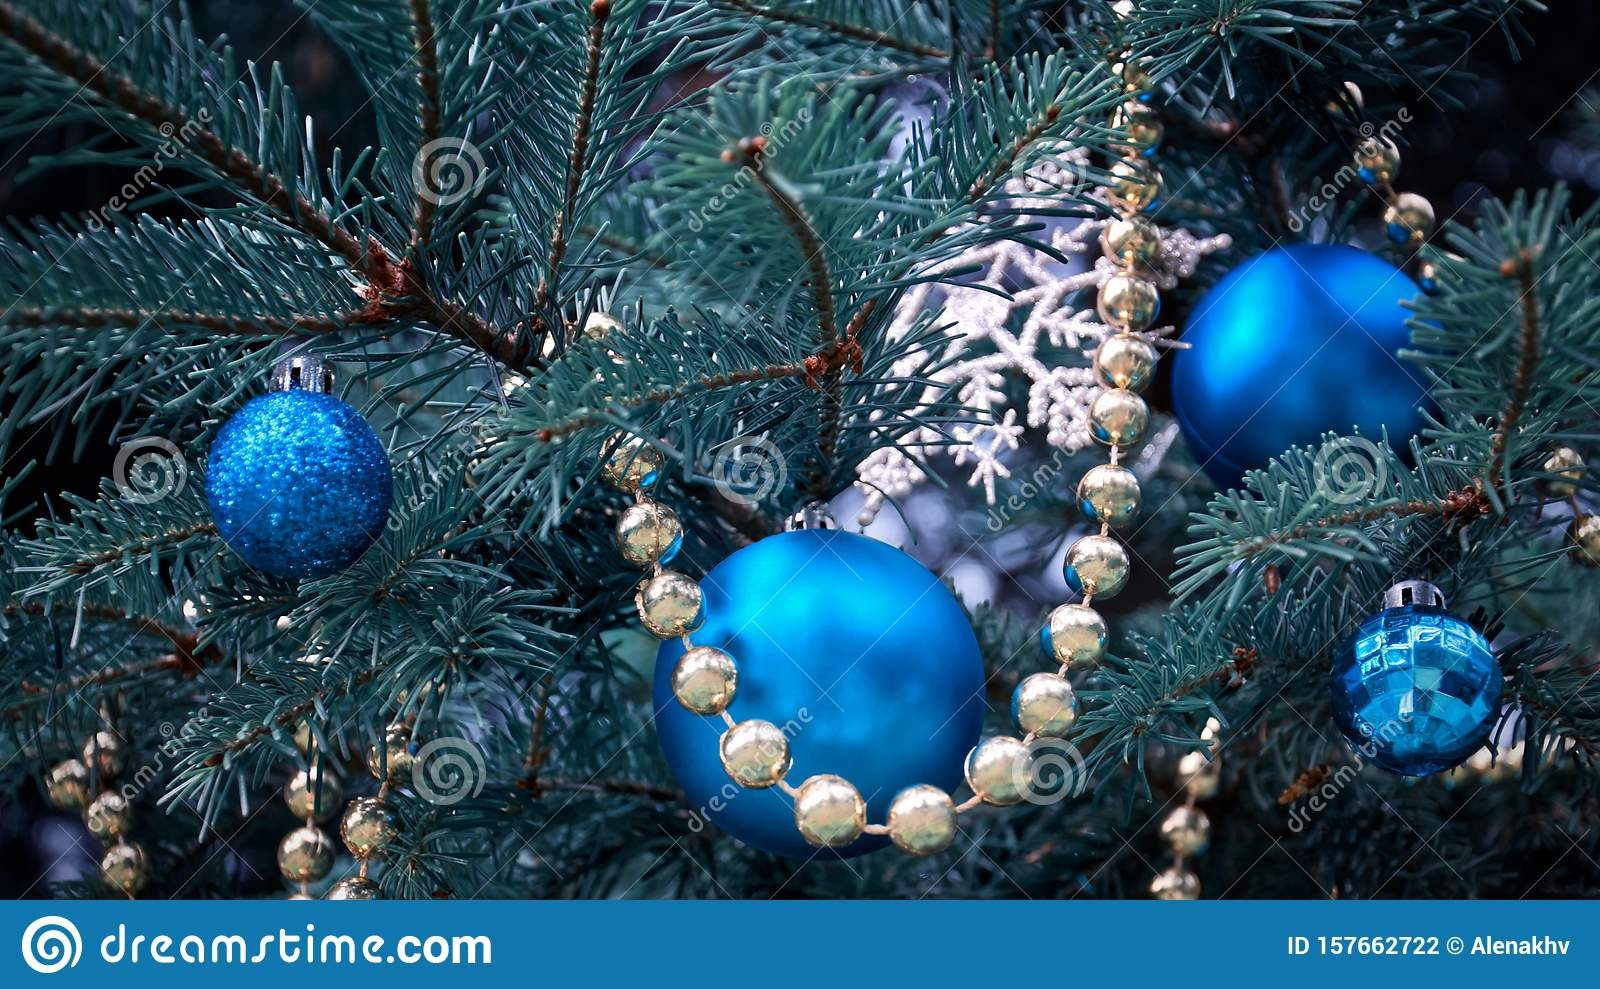 Close Up Of A Christmas Tree With Rose Gold And Turquoise Decorations Balls Snowflakes Bows Beads On A Blurry Background Stock Photo Image Of Bows Blurry 157662722